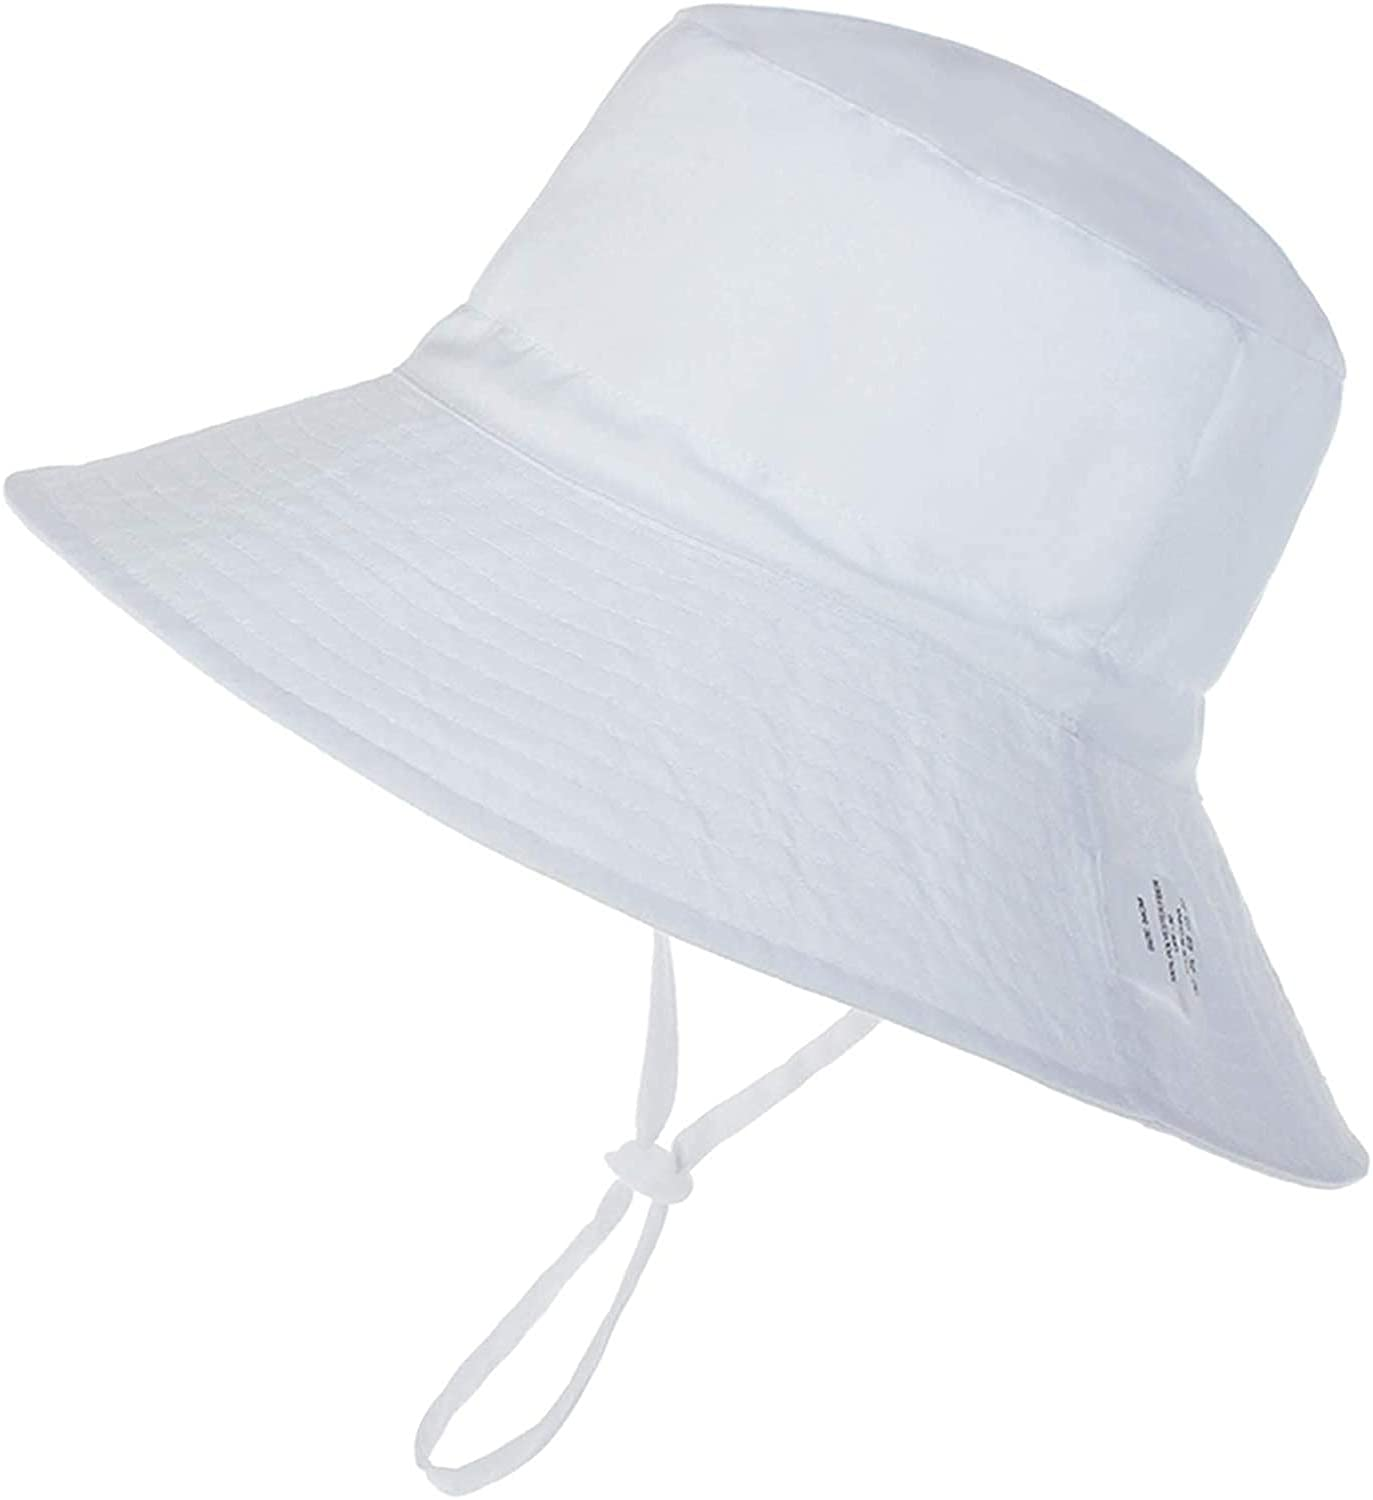 Bonvince Baby Sun Hat Toddler SummerBeach UPF 50+ Sun Protection Bucket Hats forKids Girls and Boys